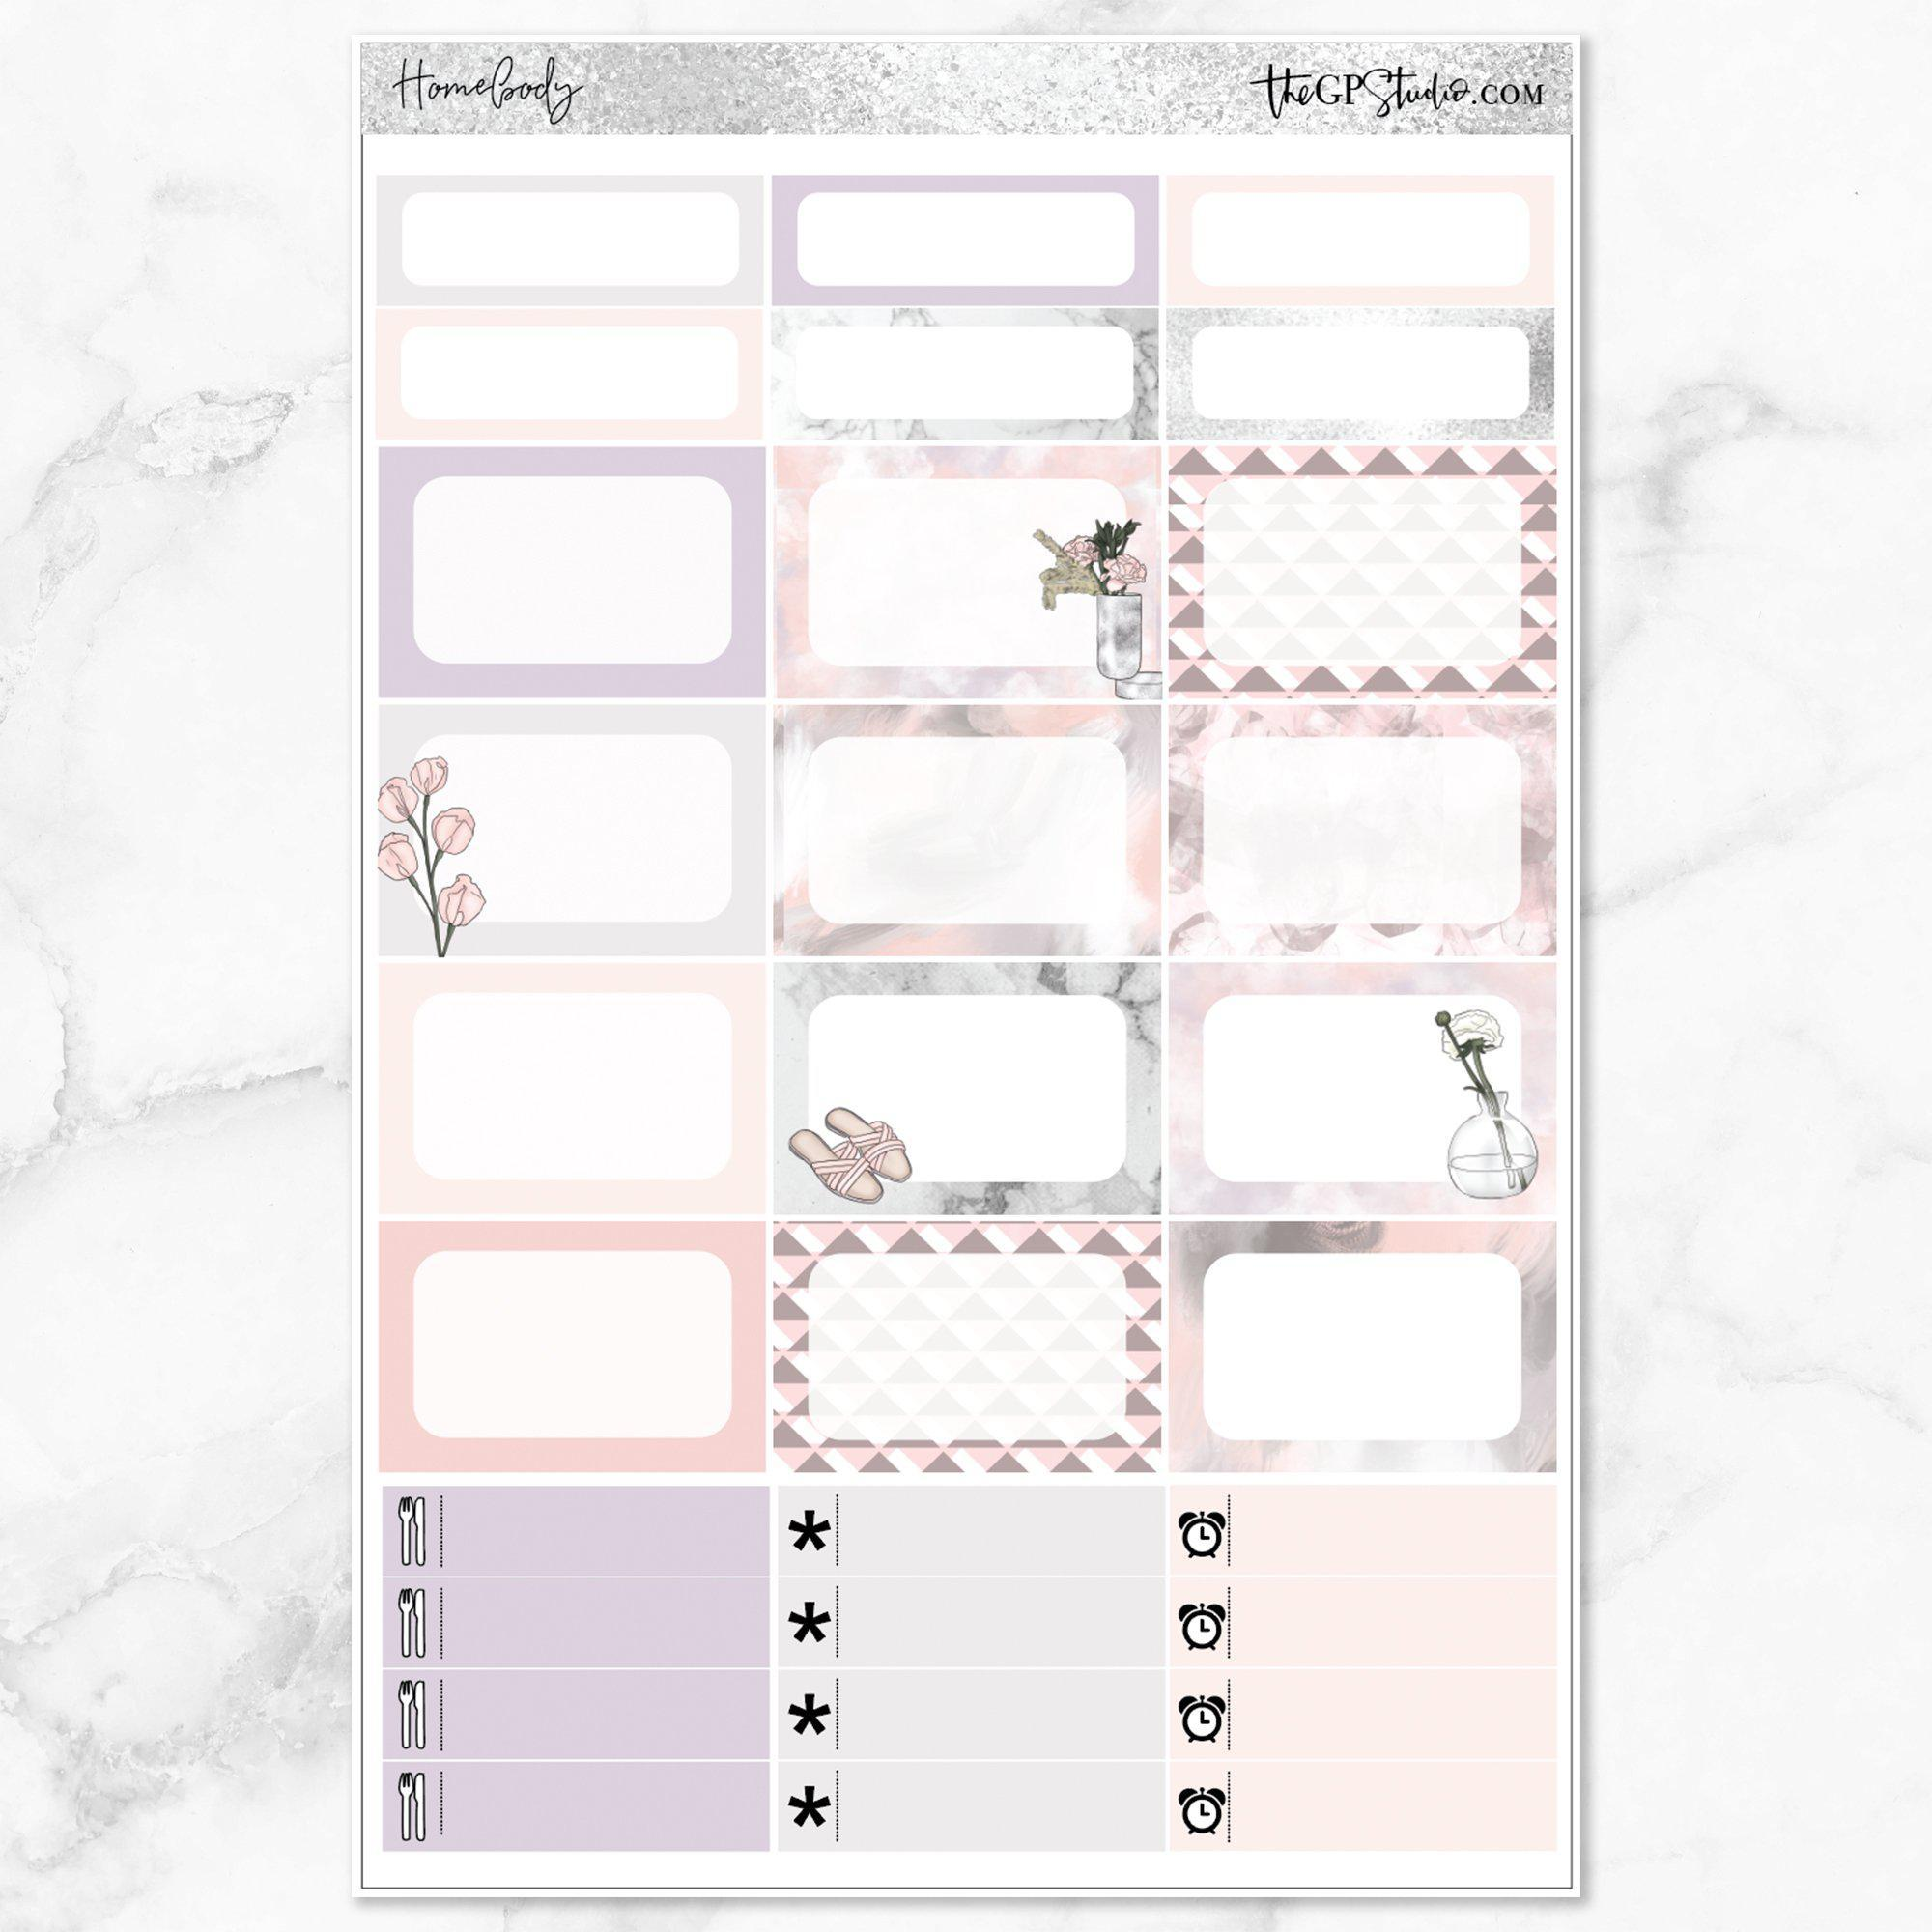 HOMEBODY Half Boxes Planner Stickers-The GP Studio